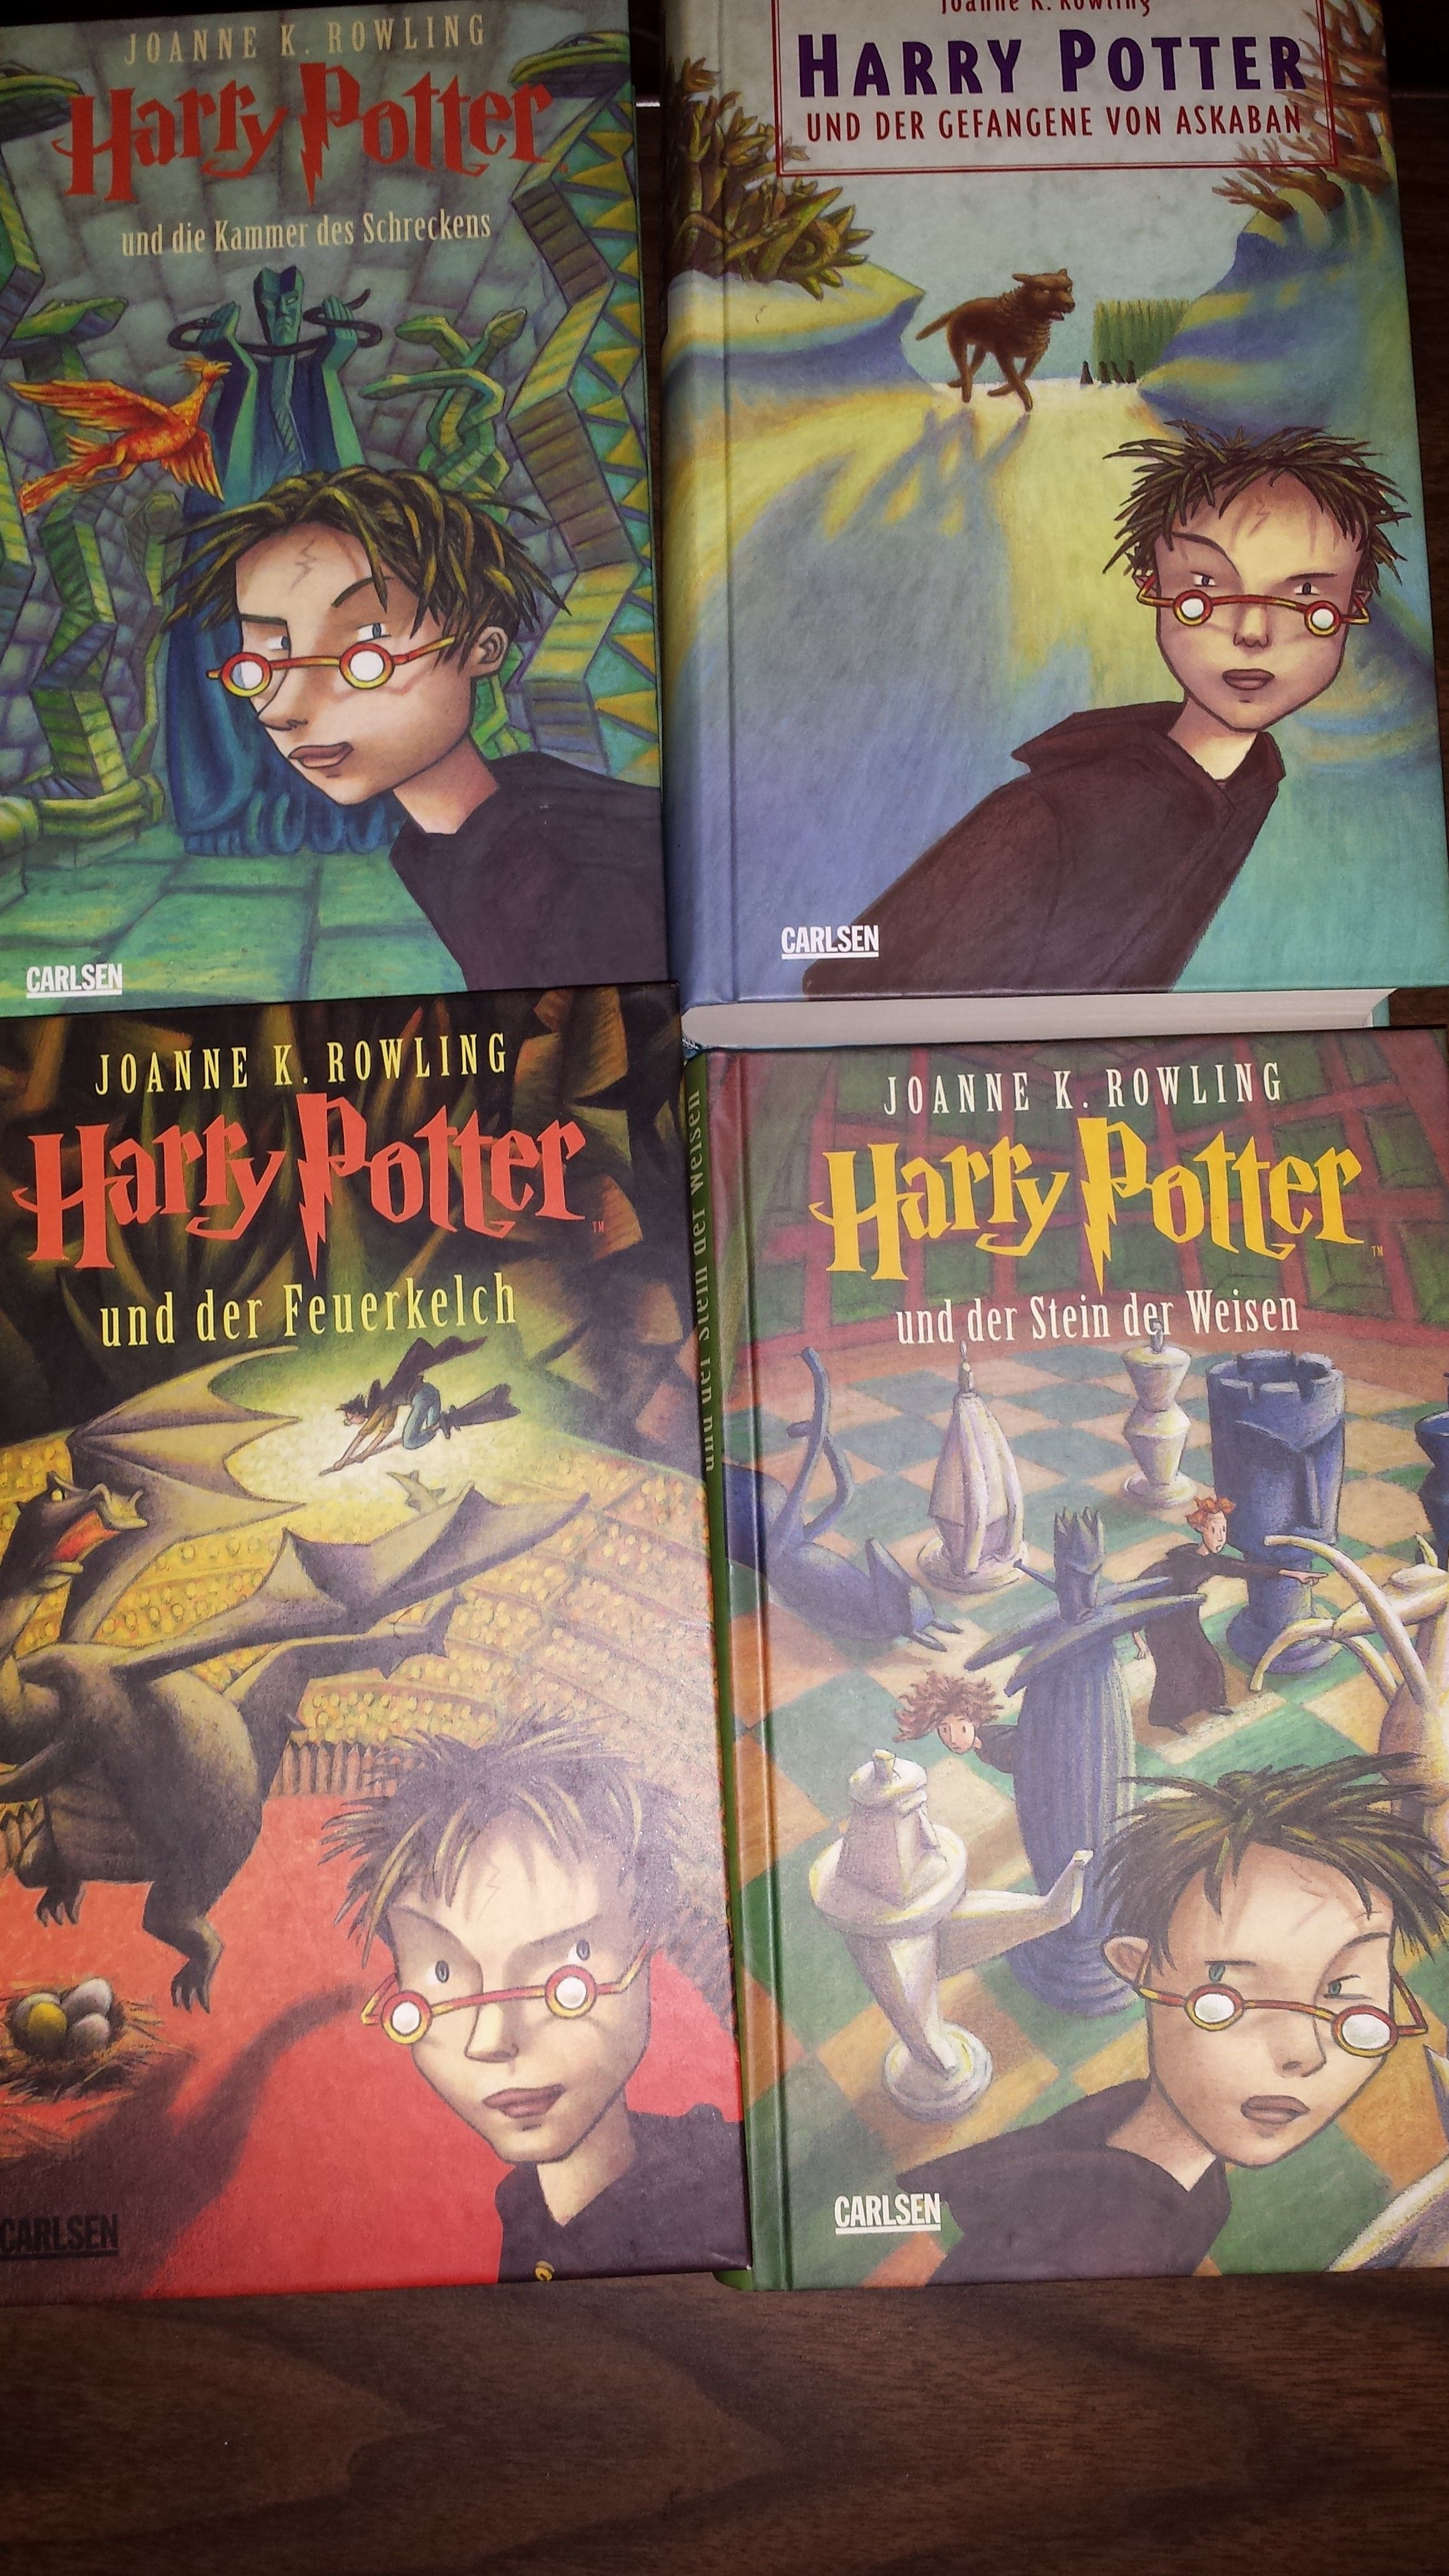 Pin By Majestic Vision On Majesticvision Com Harry Potter Book Cover Books